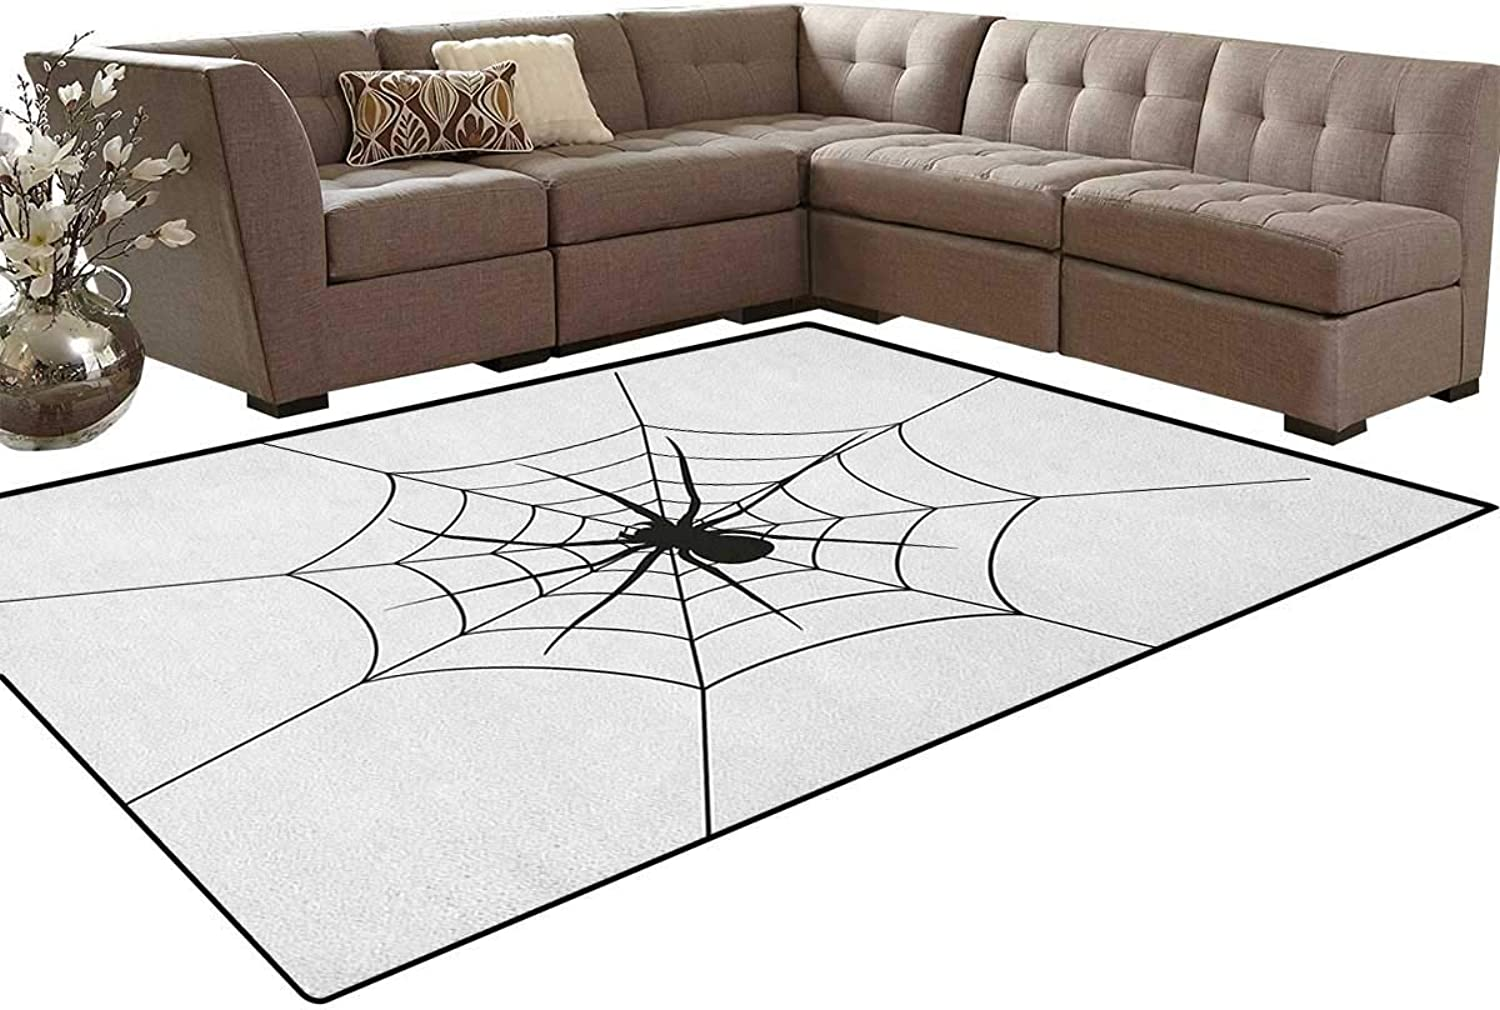 Black Spooky Spider Weighs on a Web Creepy Crawly Organism Tangled Monochrome Floor Mat Rug Indoor Front Door Kitchen and Living Room Bedroom Mats Rubber Non Slip